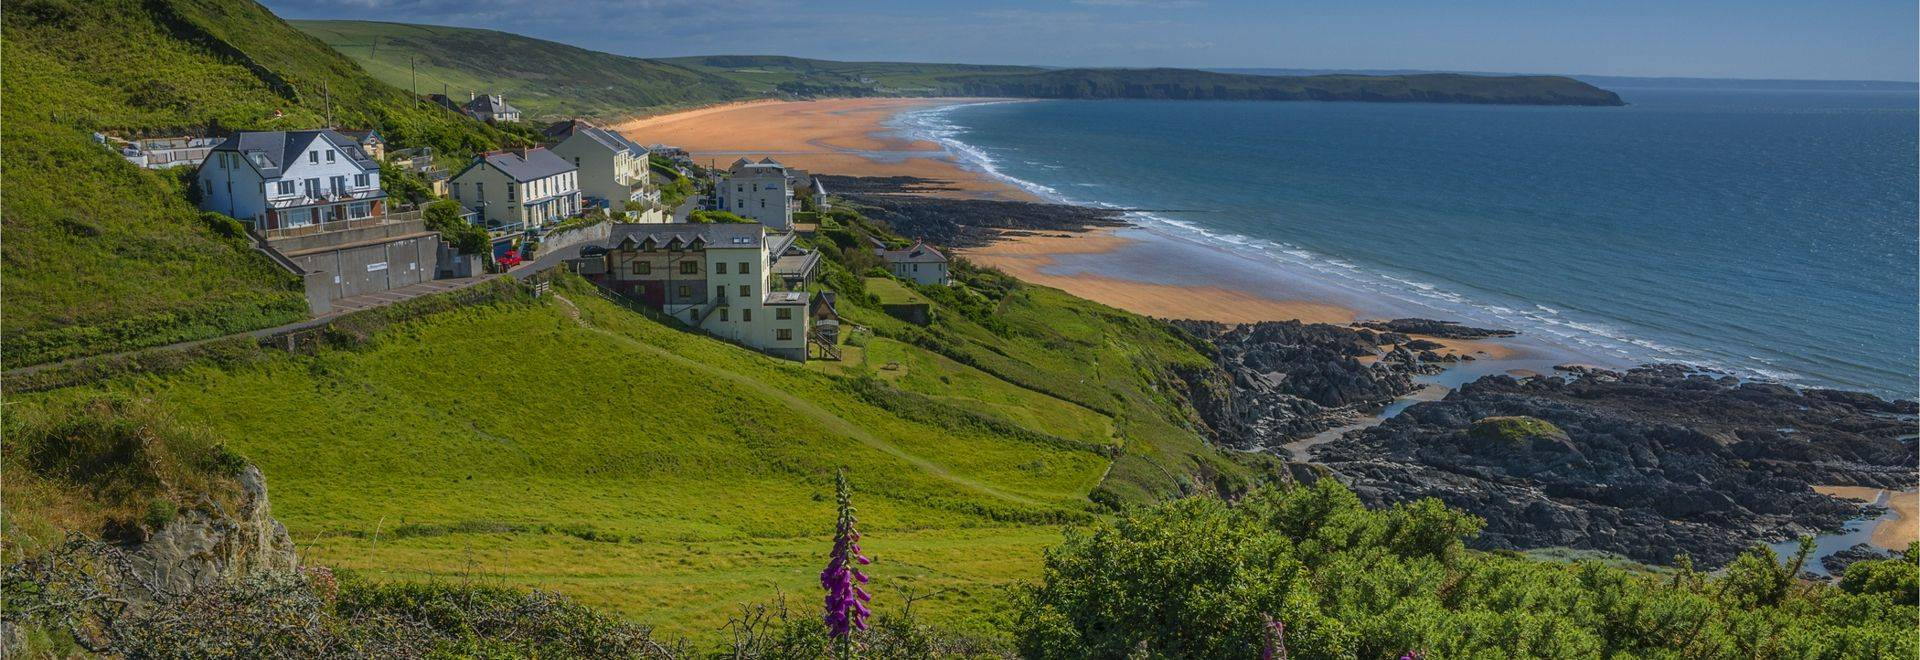 A view to the Woolacombe sands, perhaps one of England's finest sandy beaches. Devon.